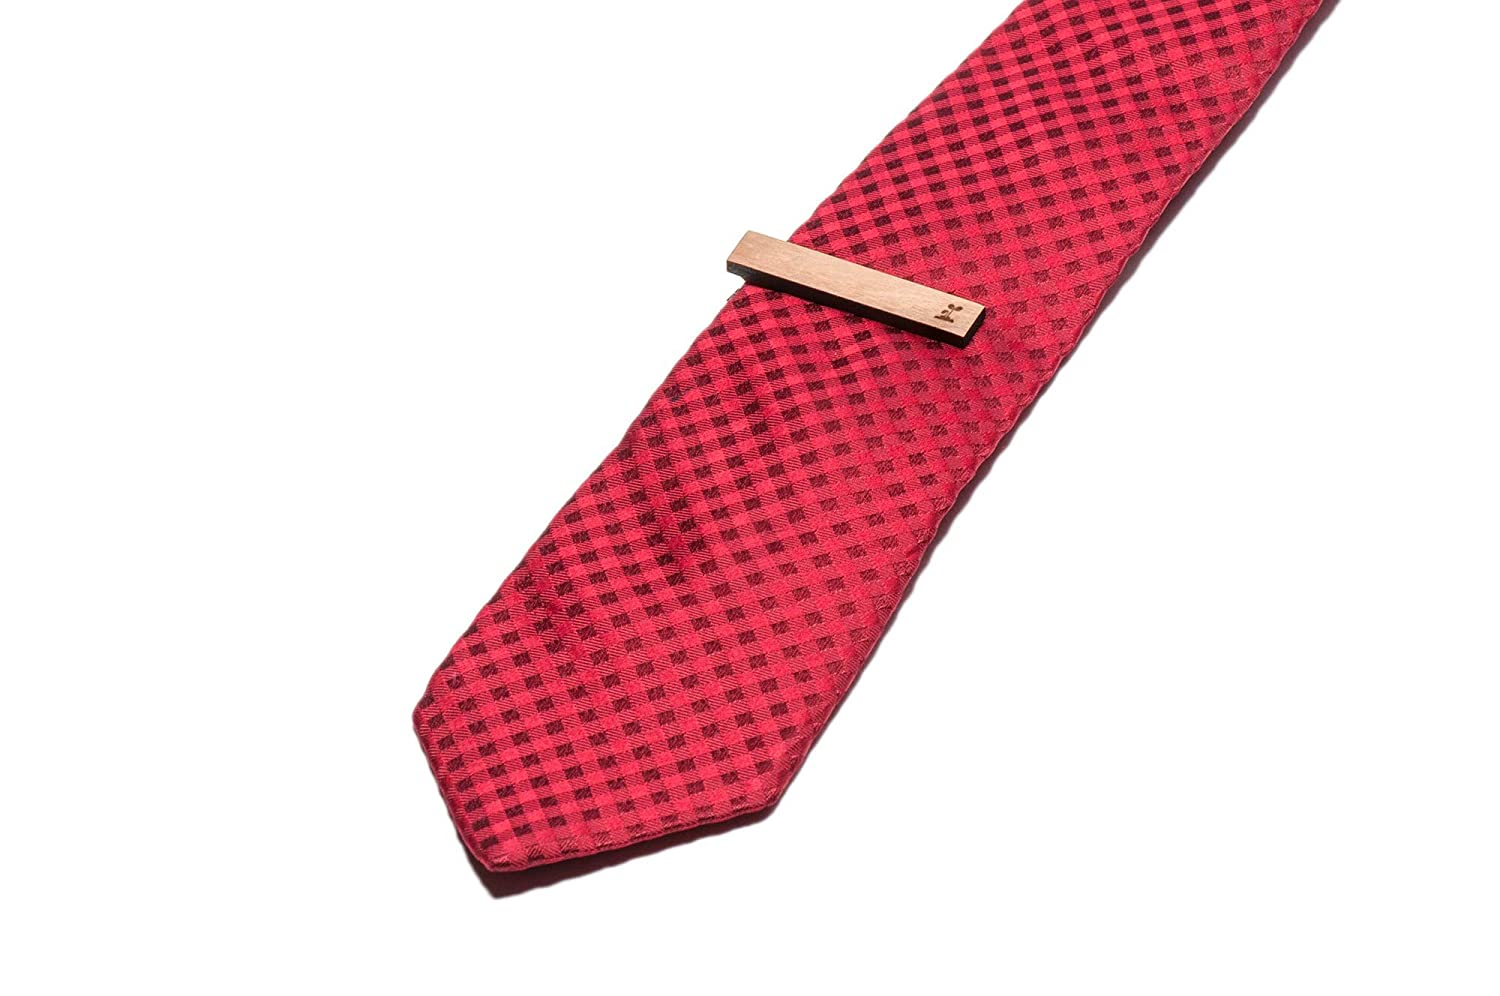 Wooden Accessories Company Wooden Tie Clips with Laser Engraved Sprout Design Cherry Wood Tie Bar Engraved in The USA